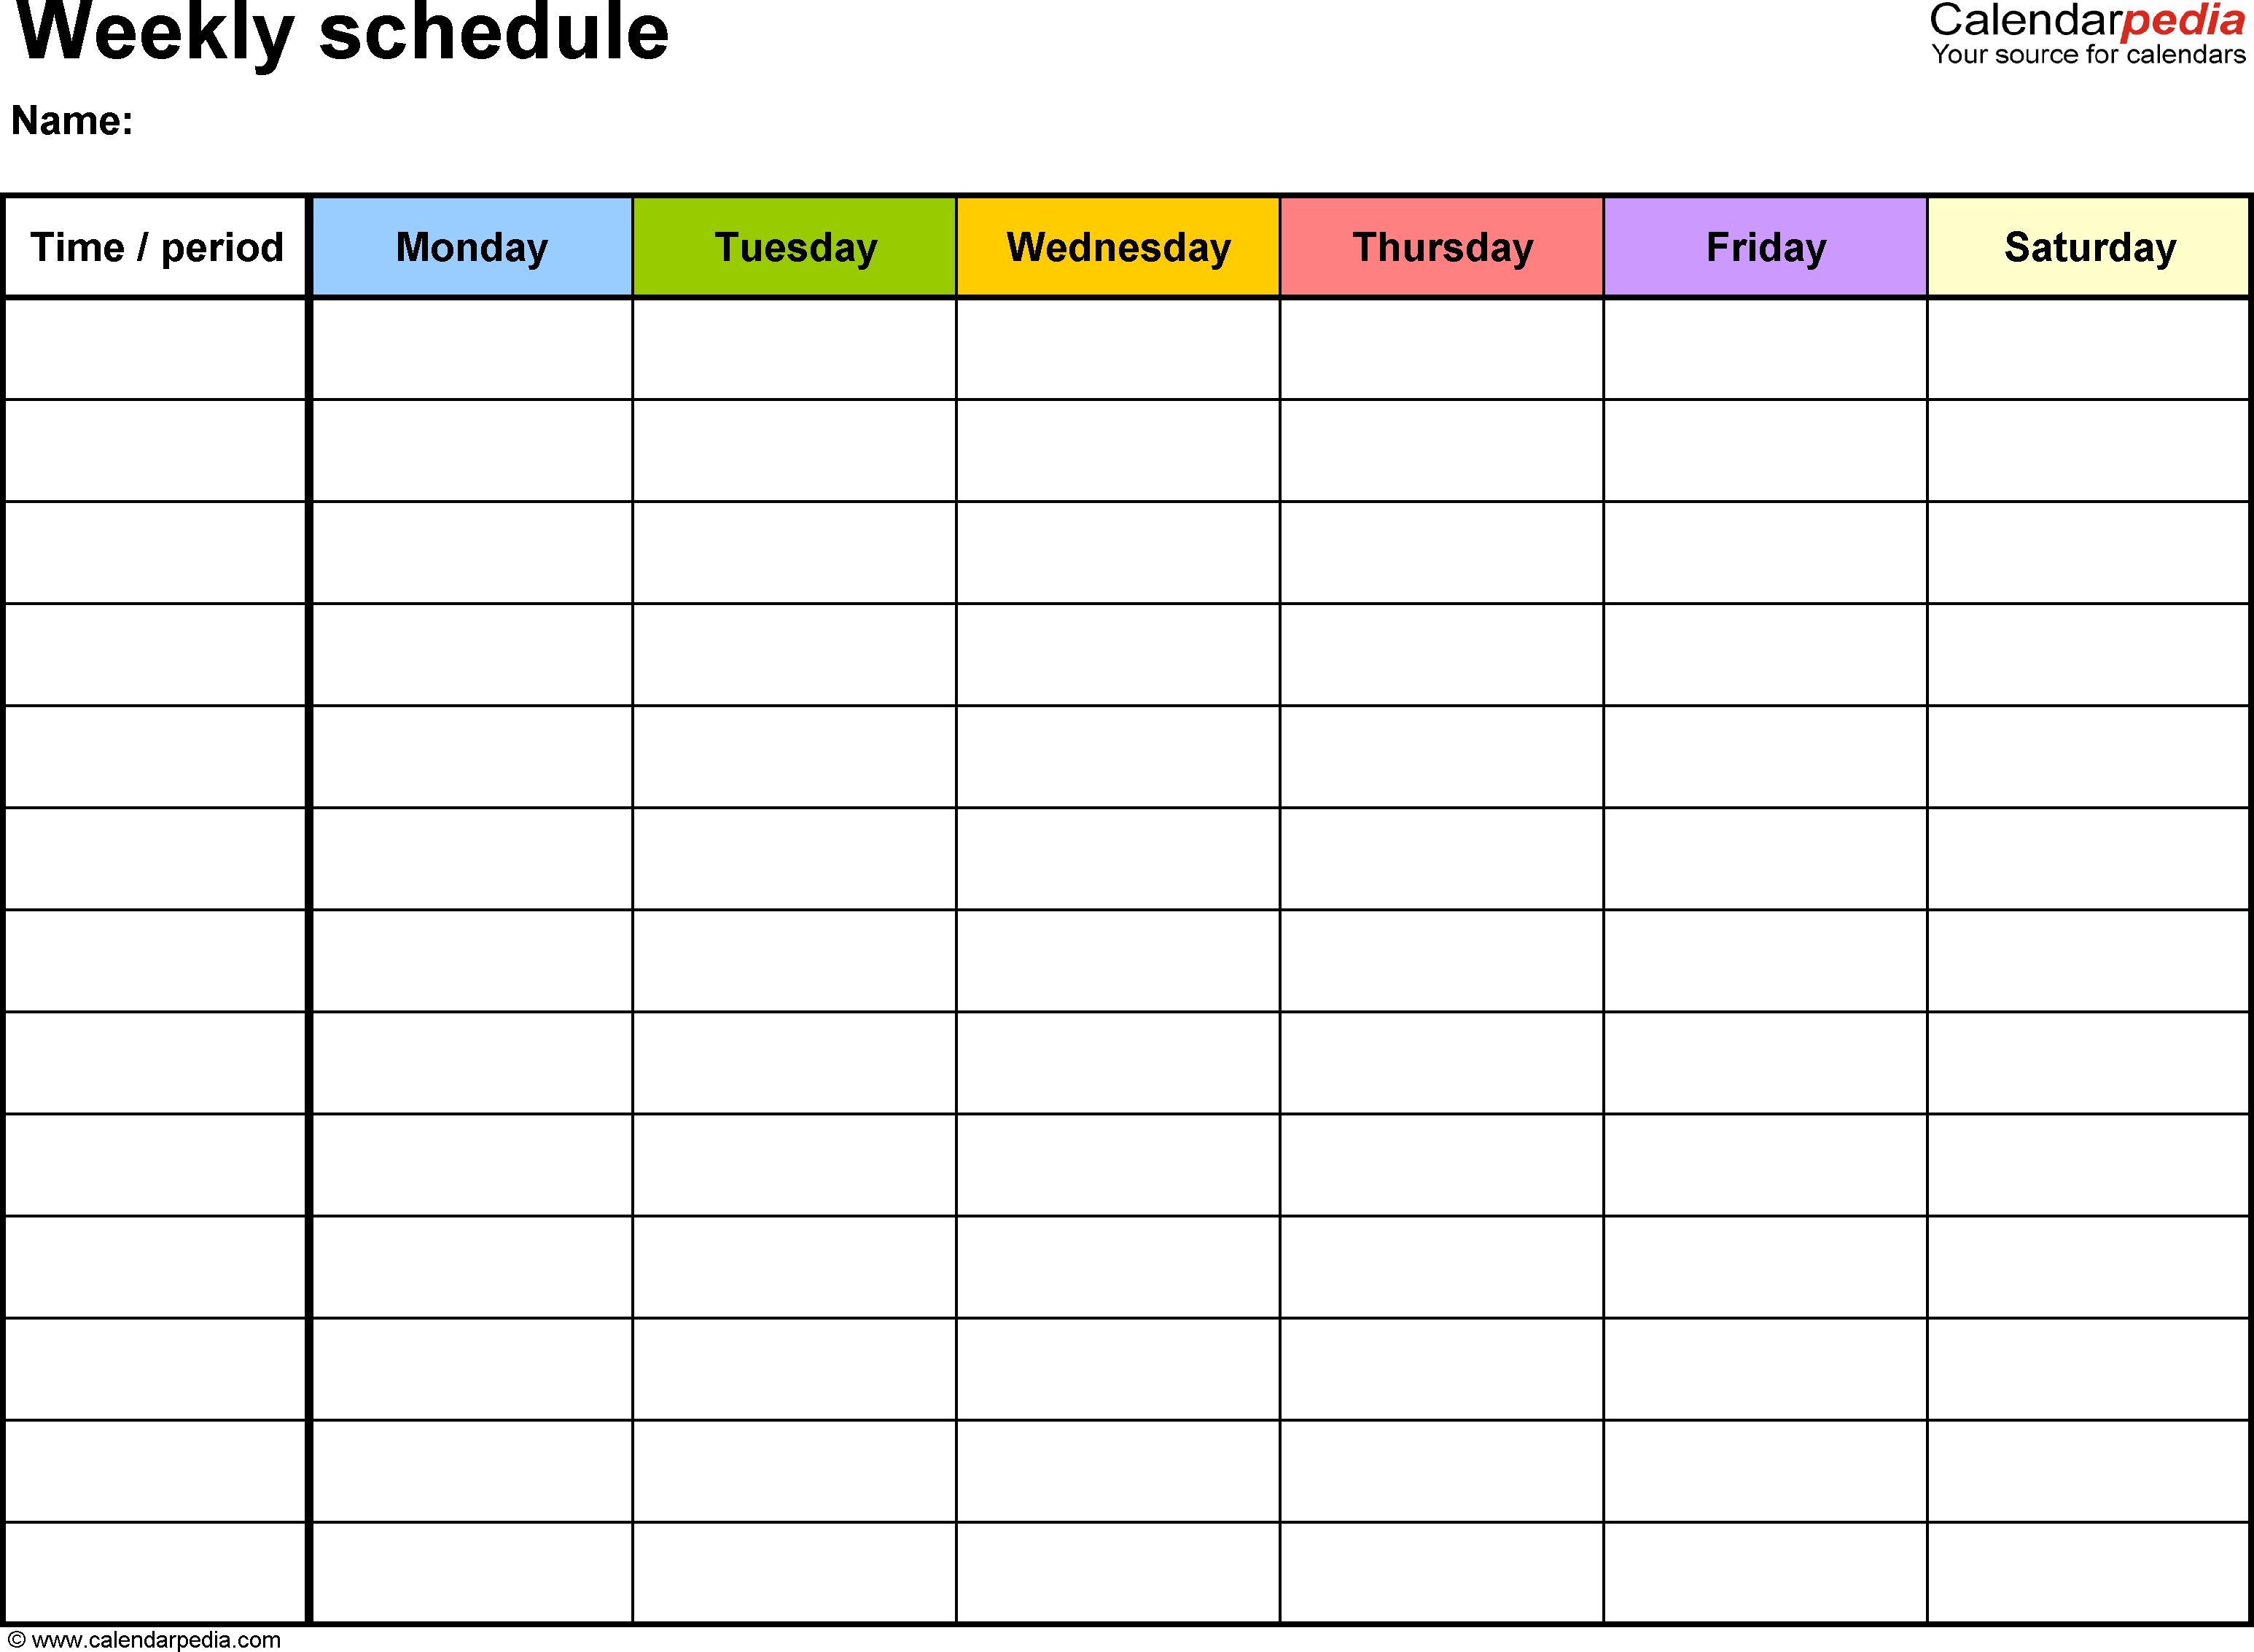 Free Weekly Schedule Templates For Word - 18 Templates-Template Monday To Friday